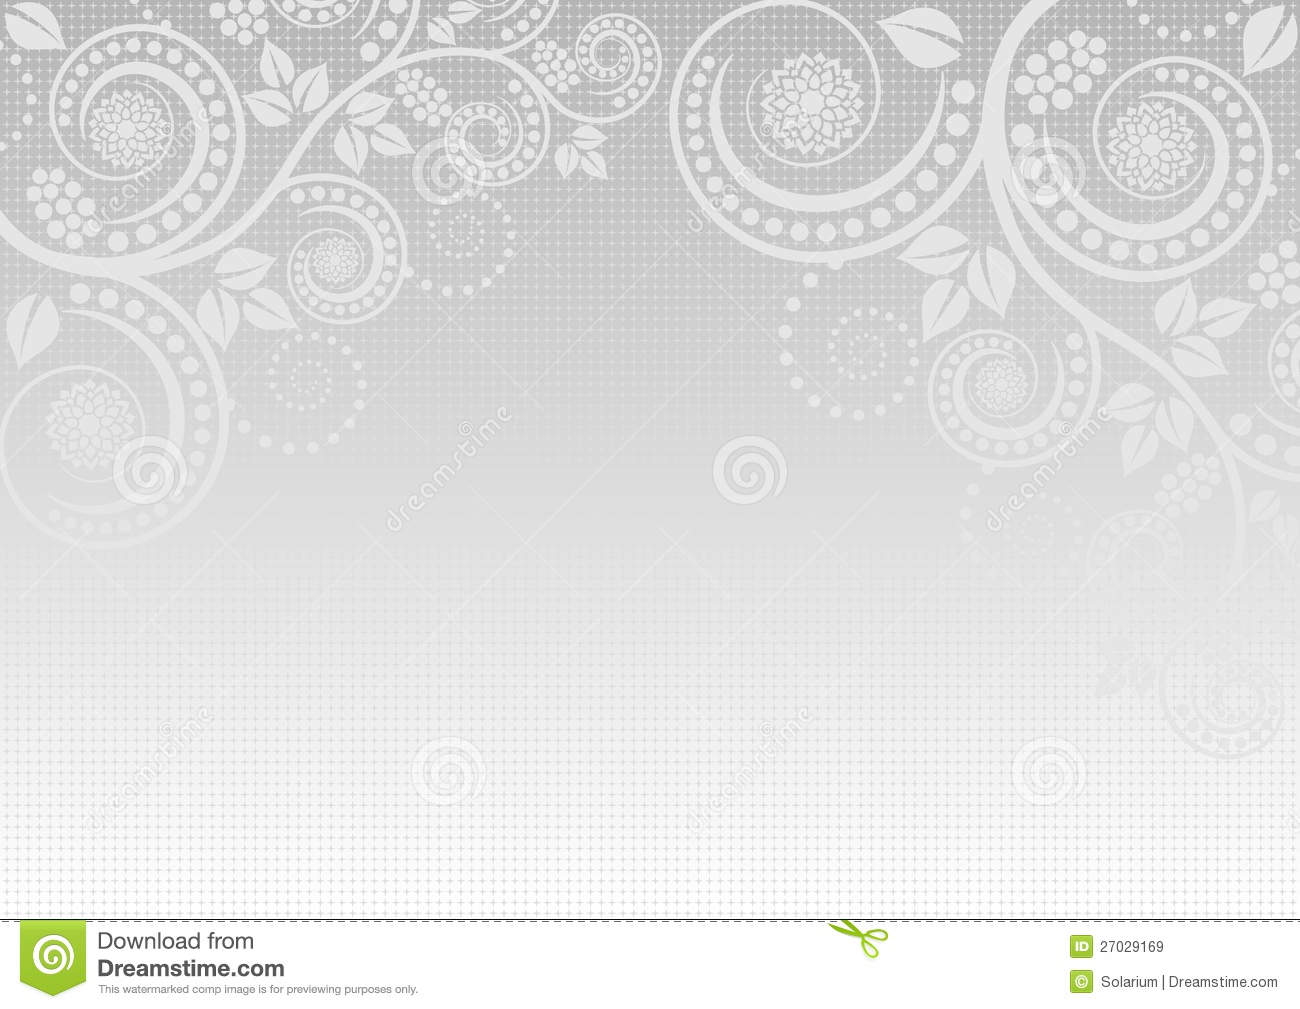 Black And White Polka Dot Wallpaper Border Light Gray Background Stock Vector Illustration Of Card